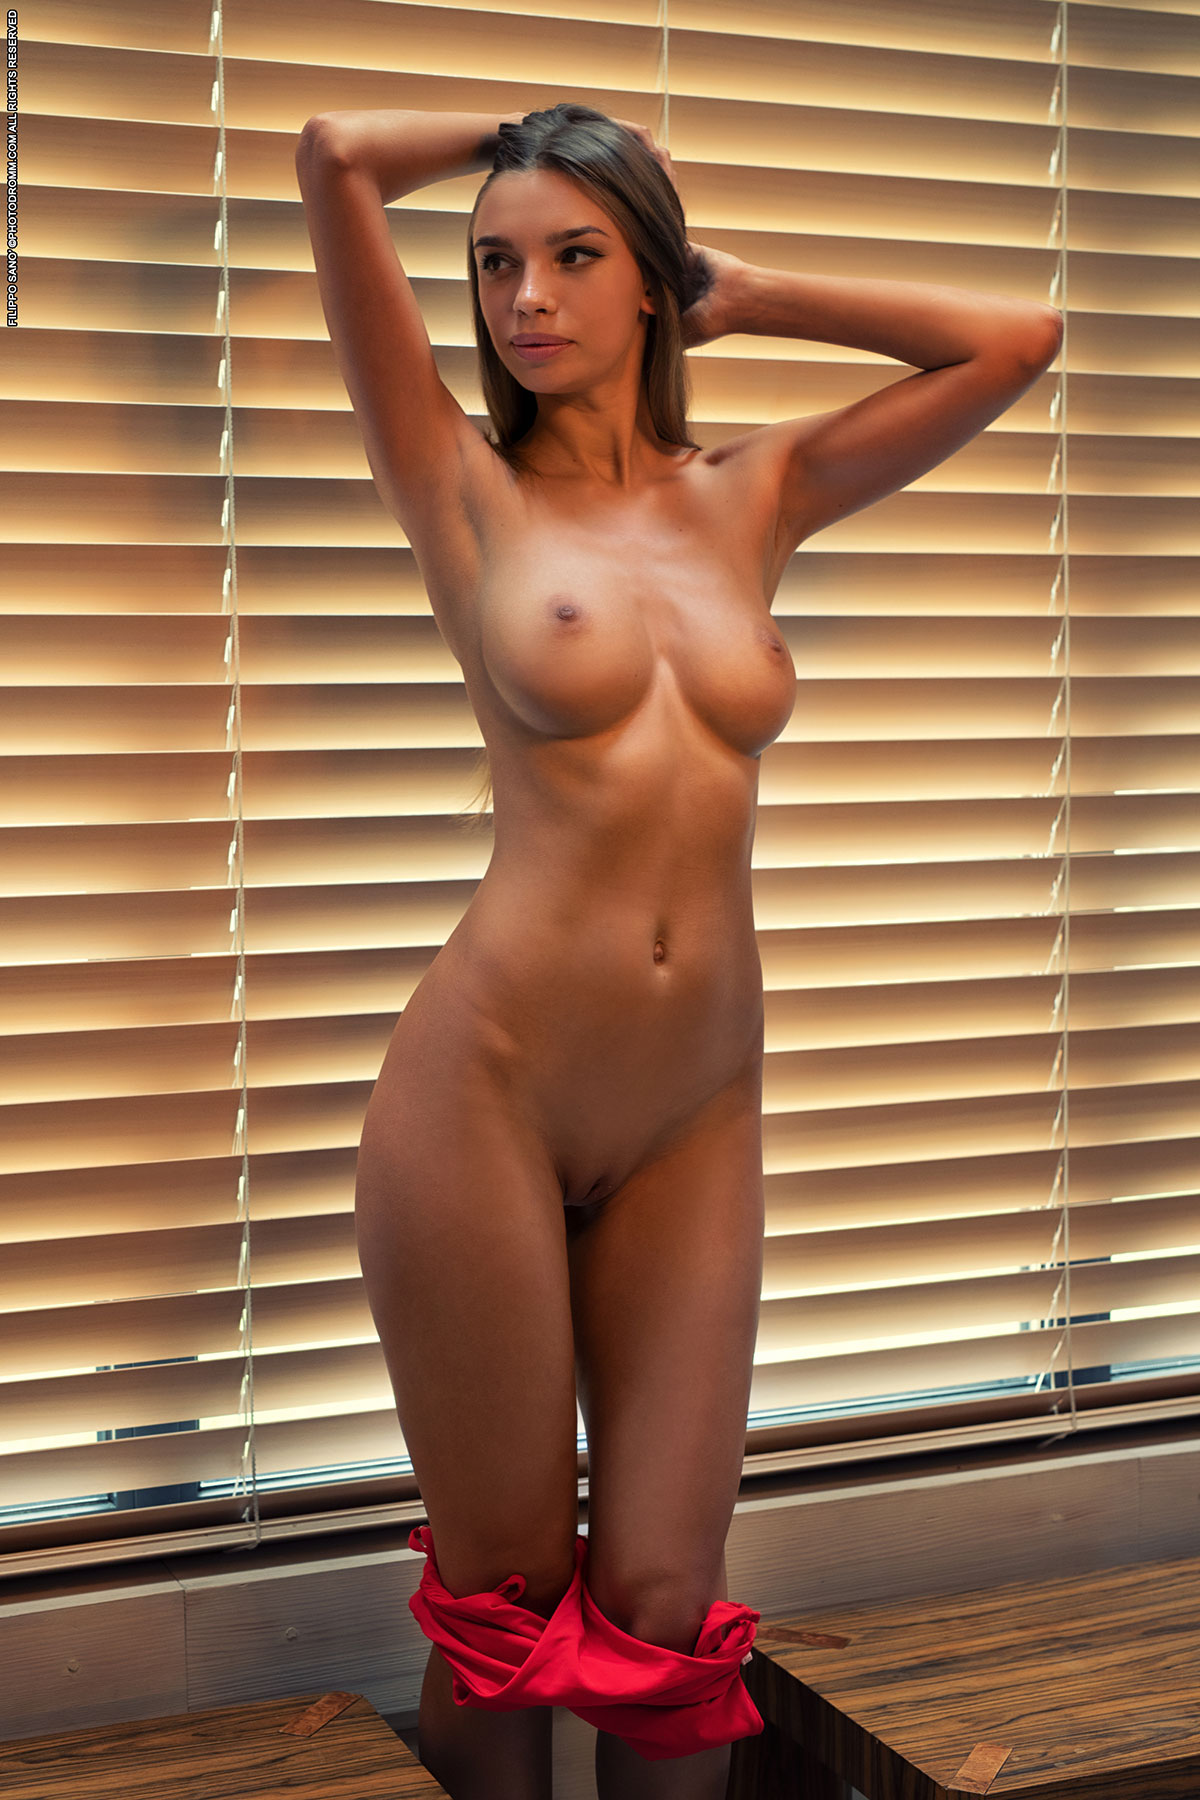 Best nude pic site